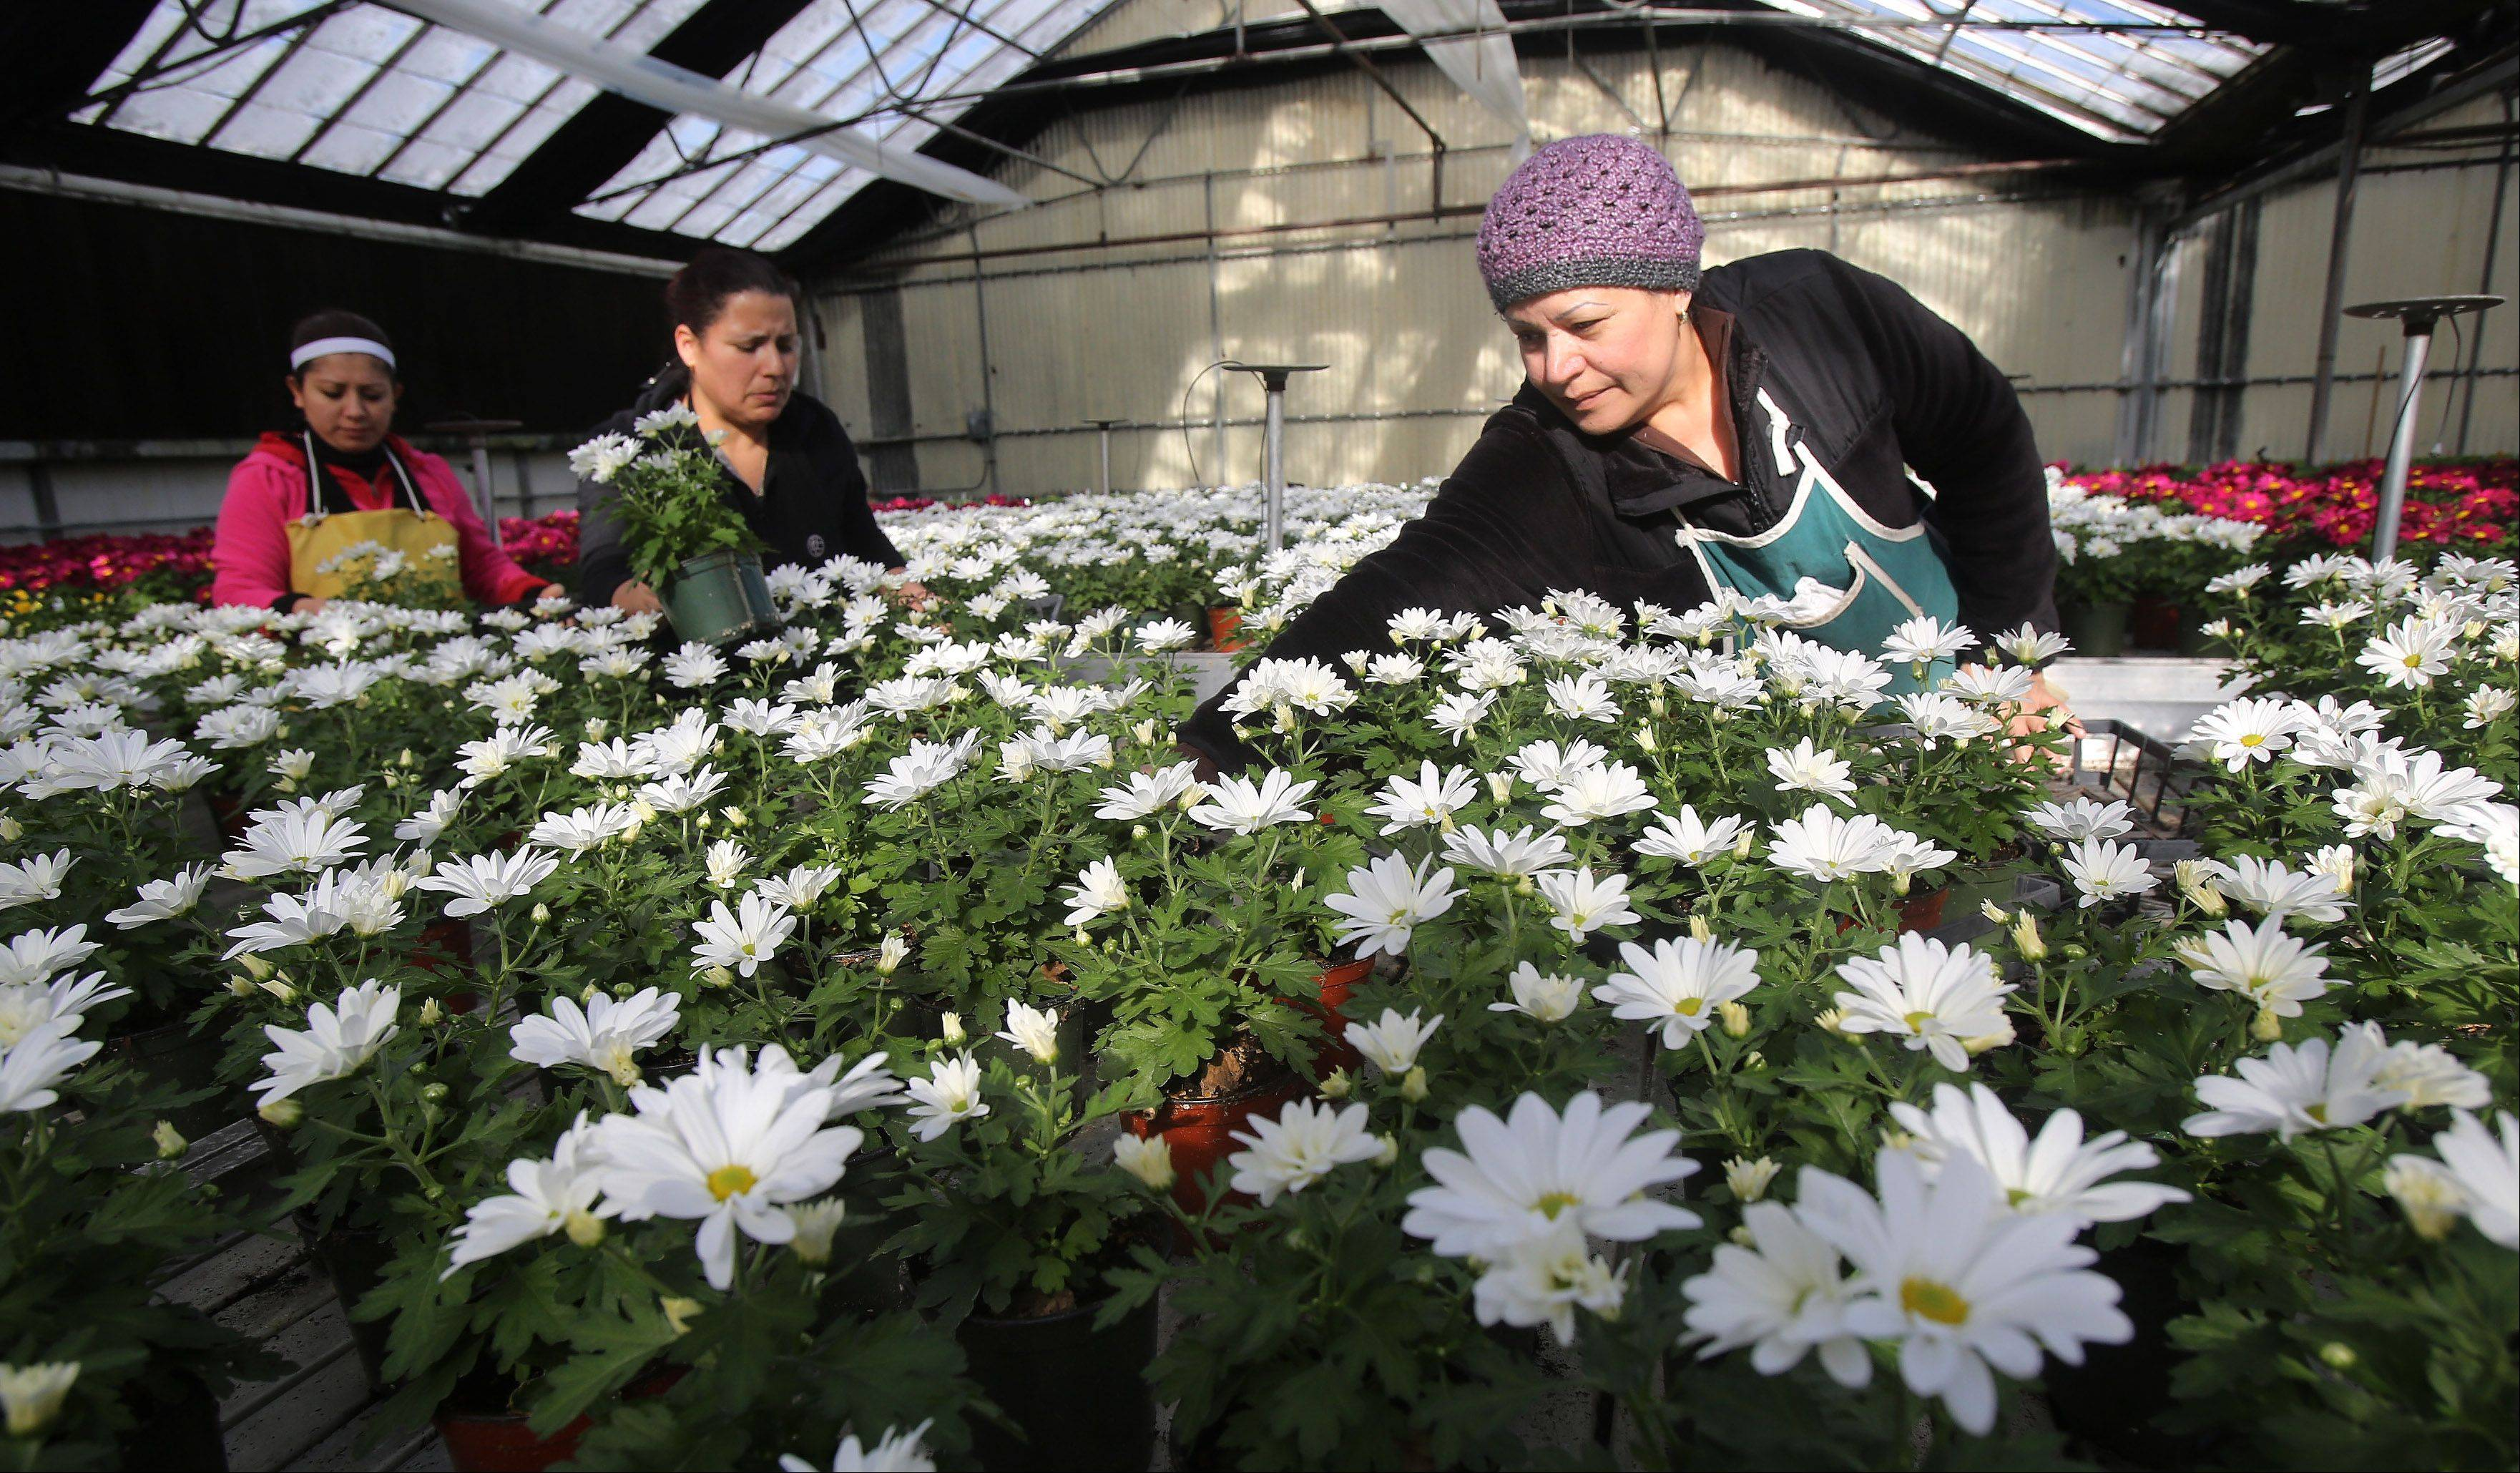 Rosario Telatorre, from right, Berta Telatorre and Veronica Gonzalez work on the mums at Leider Greenhouses and Garden Center in Buffalo Grove on Tuesday.